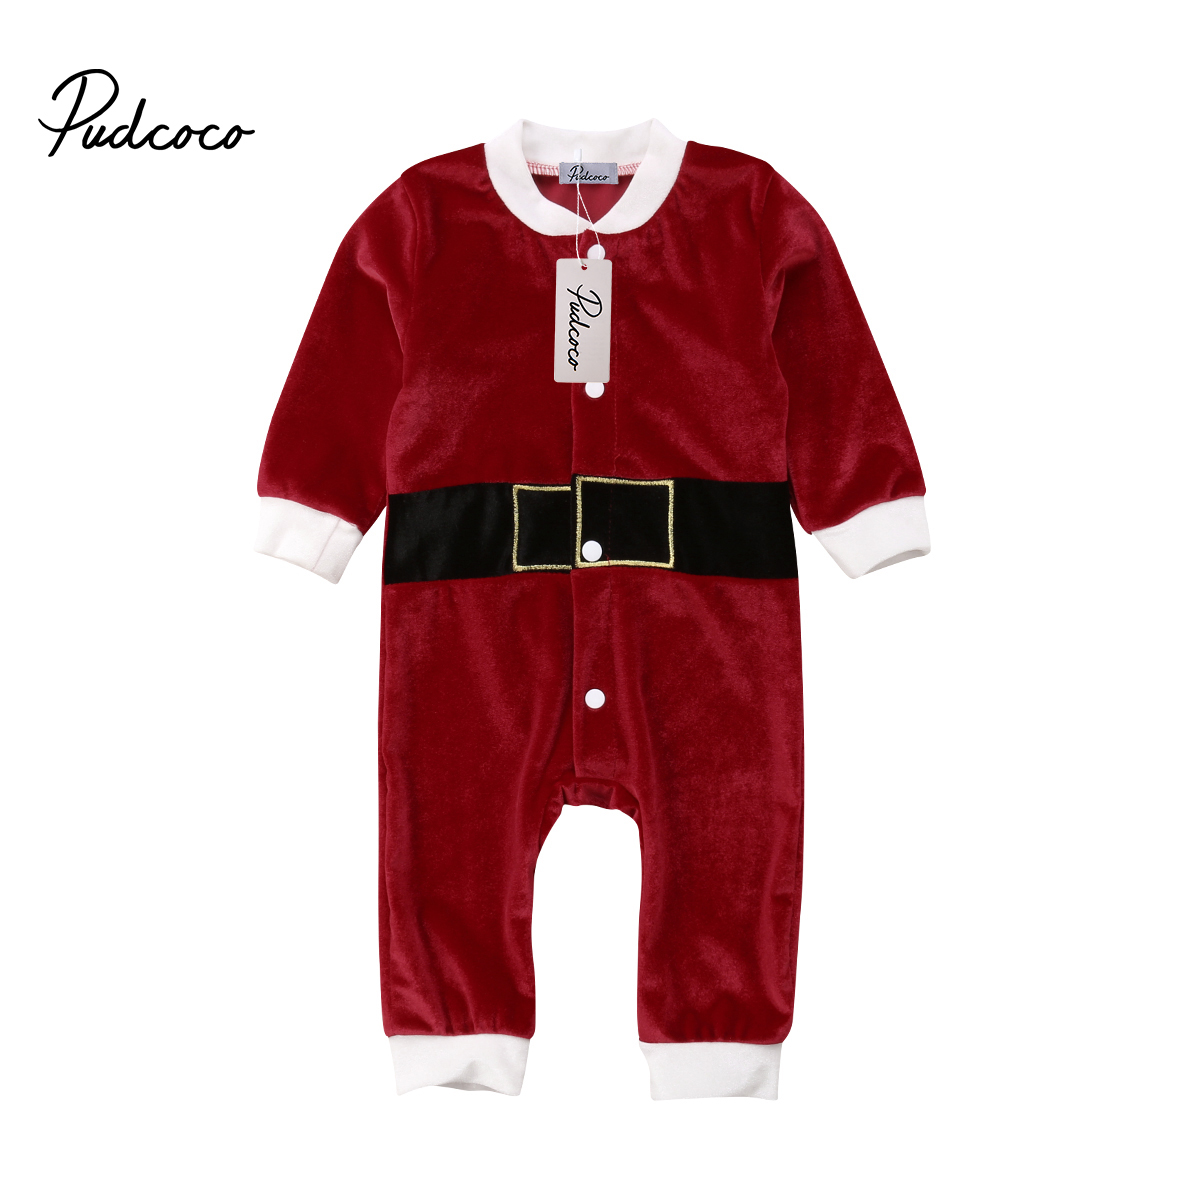 US Newborn Baby Boy Girls Christmas Romper Jumpsuit Bodysuit Playsuit Clothes